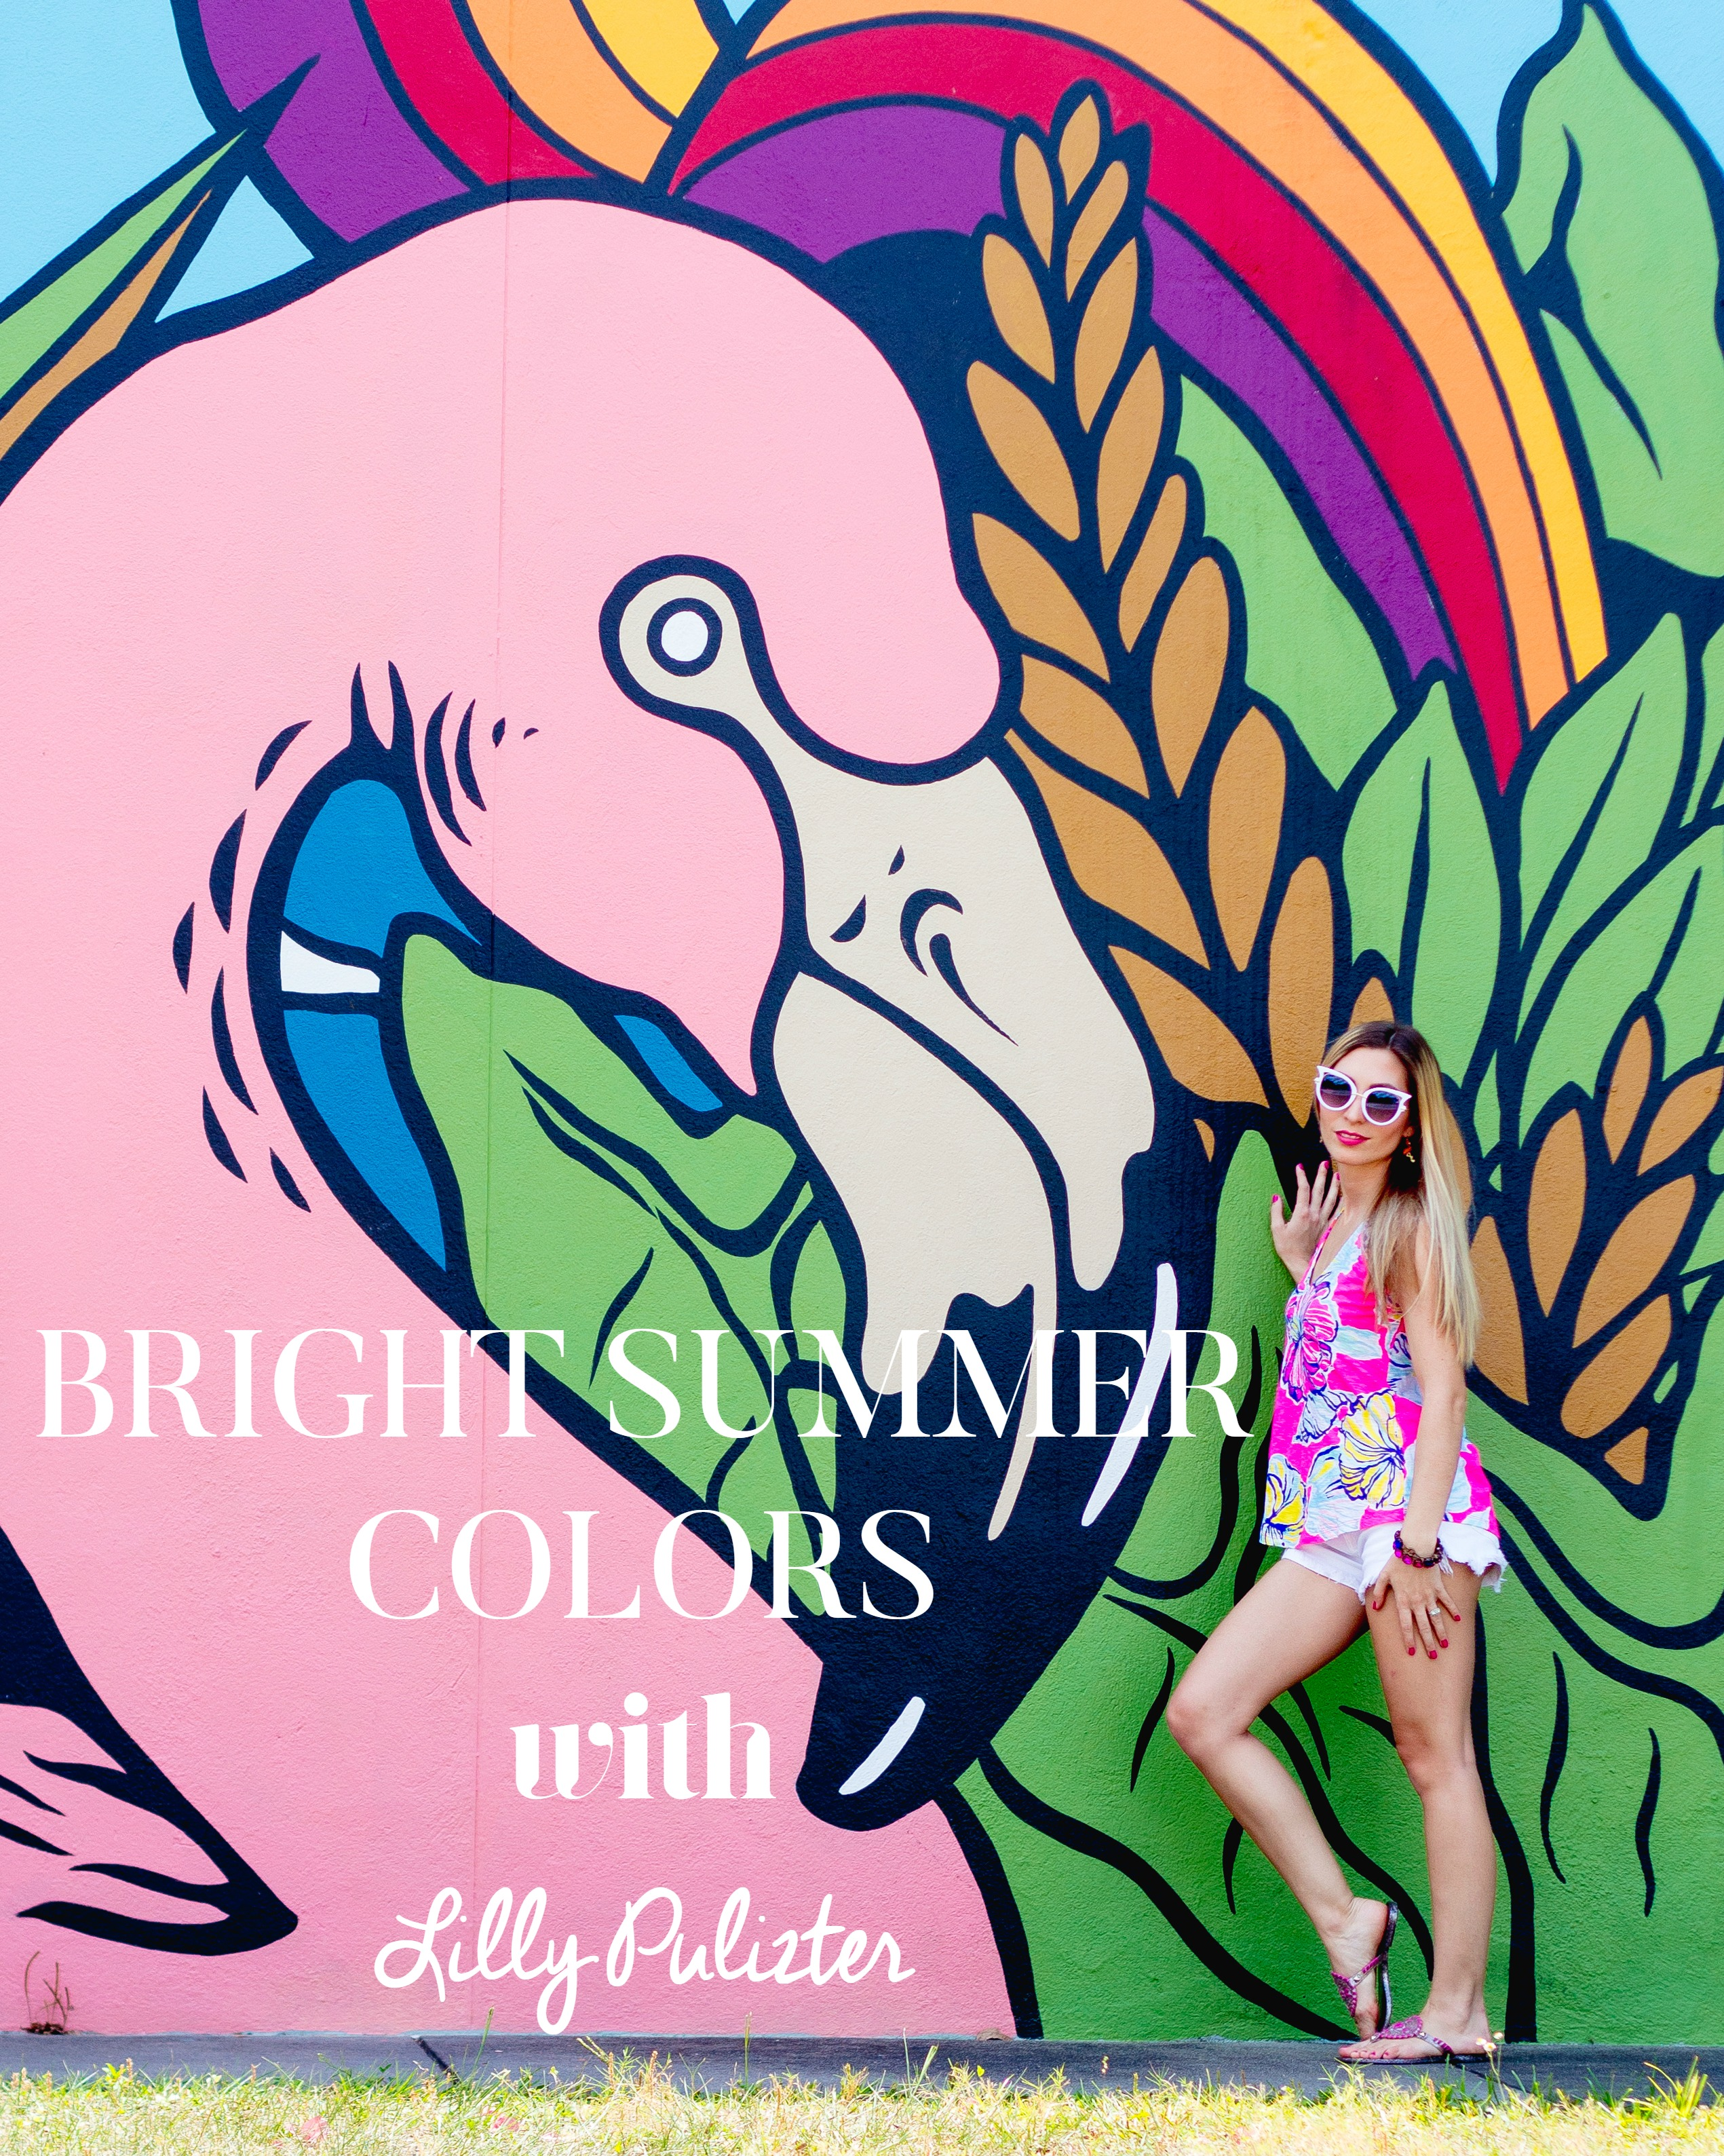 BRIGHT SUMMER COLORS WITH LILY PULITZER